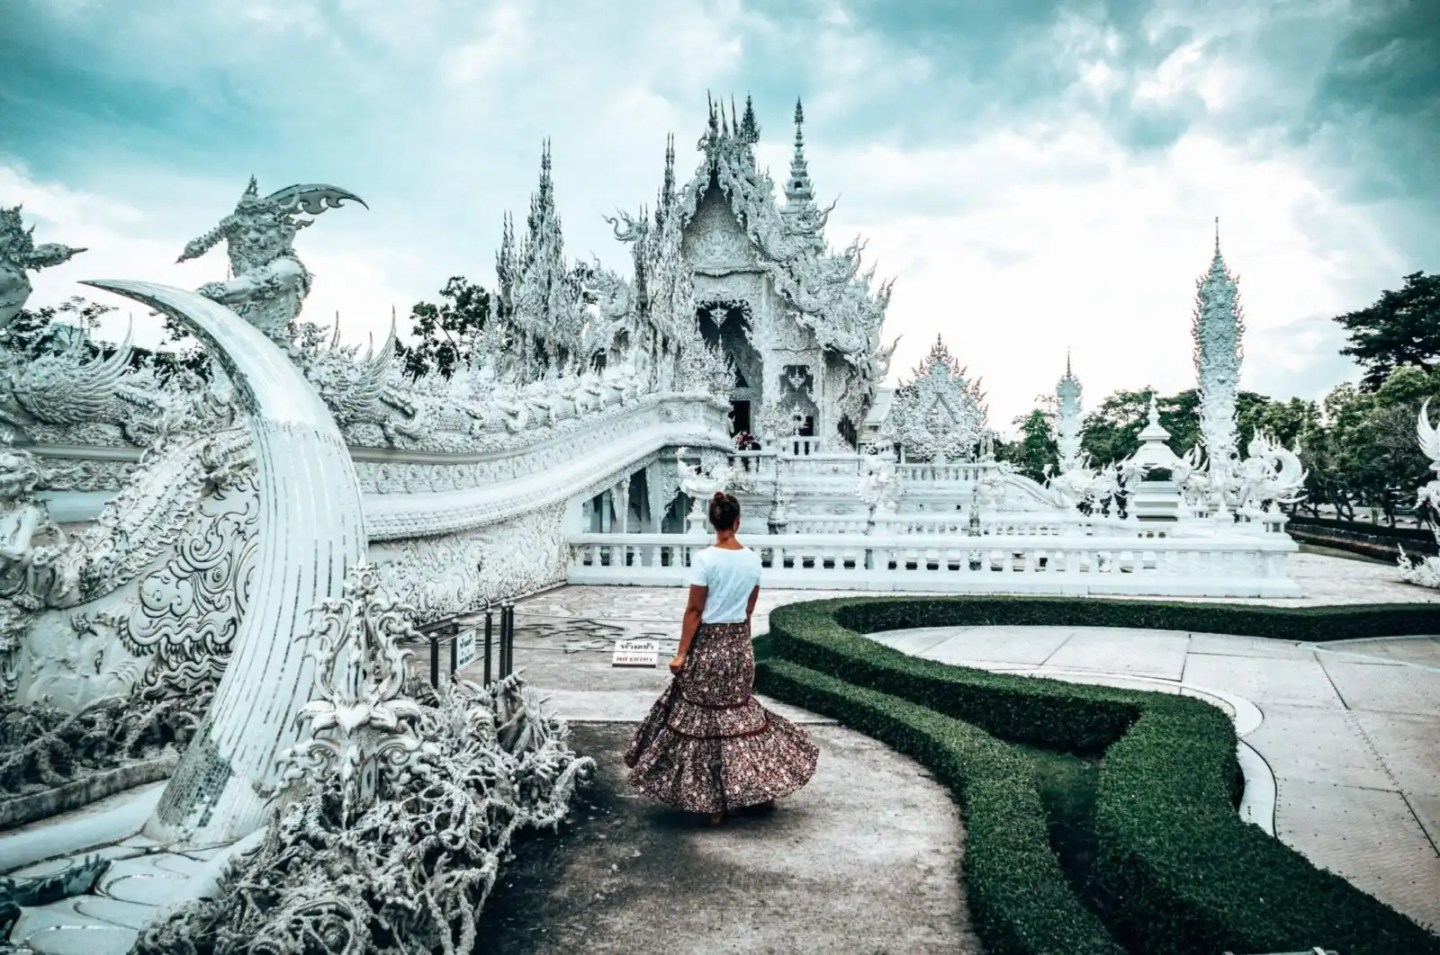 The White Temple, Chiang Rai